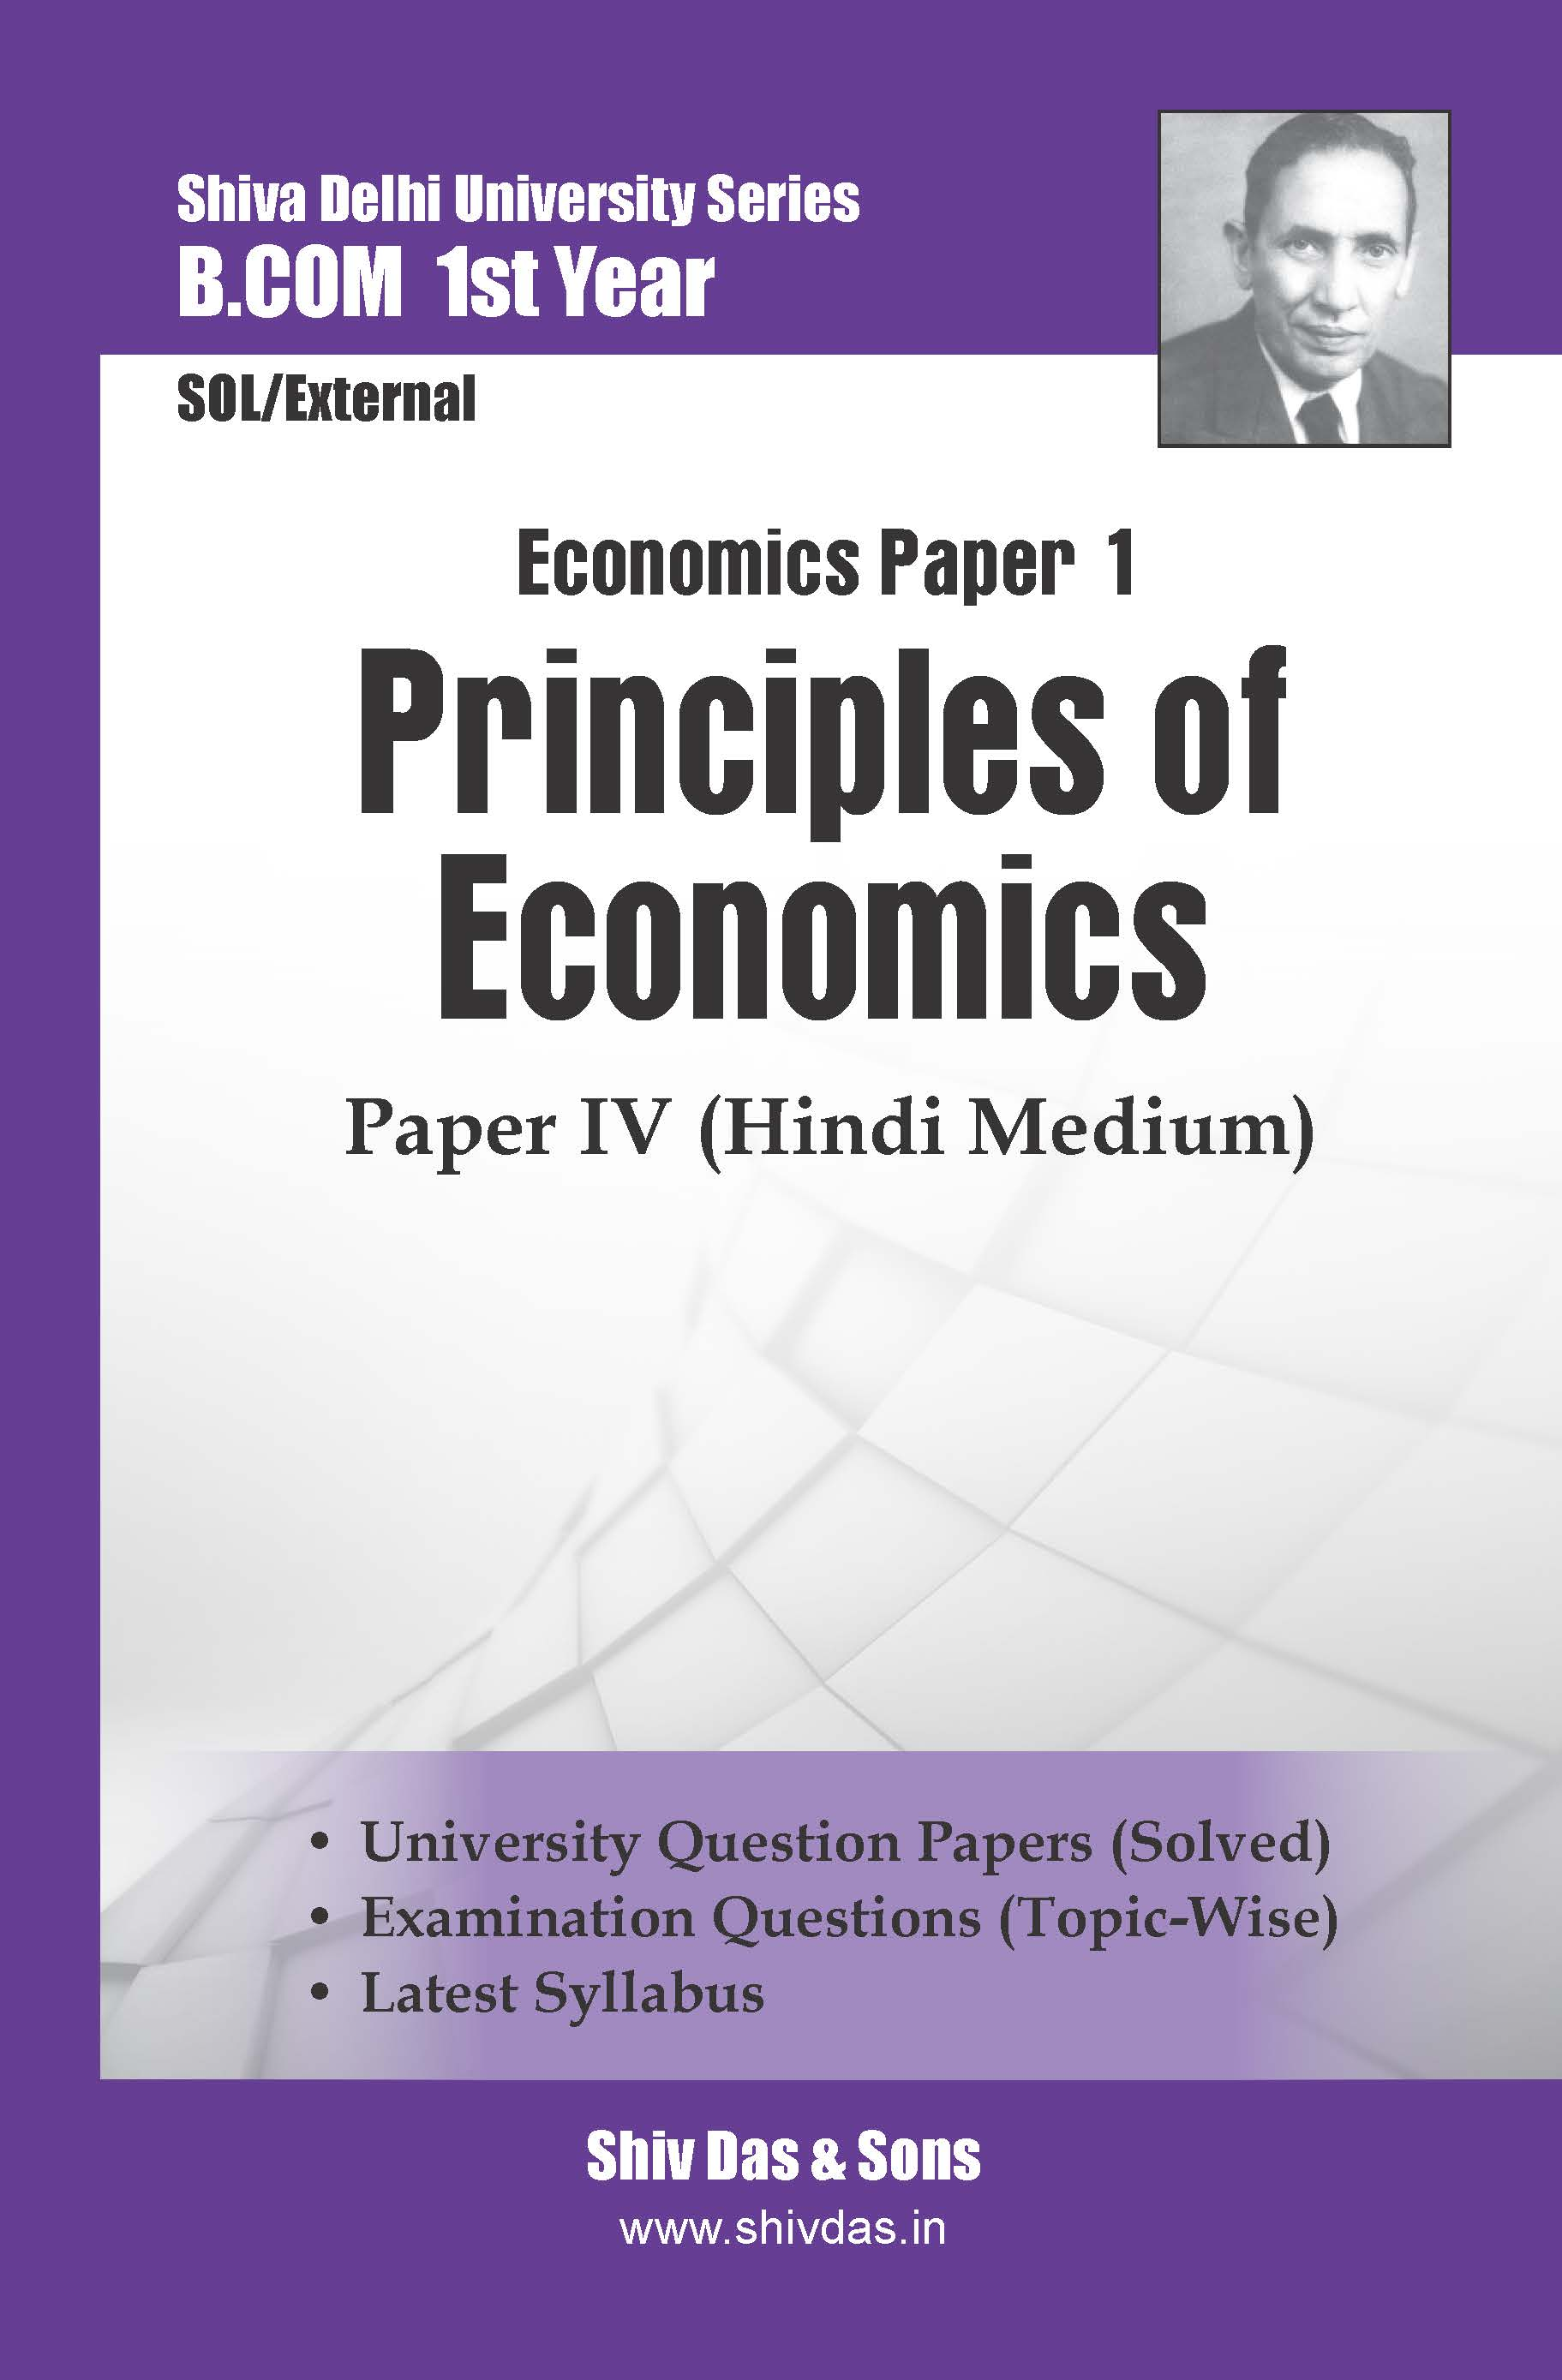 B.Com 1st Year SOL/External Principles of Economics (Hindi Medium) Shiv Das Delhi University Series